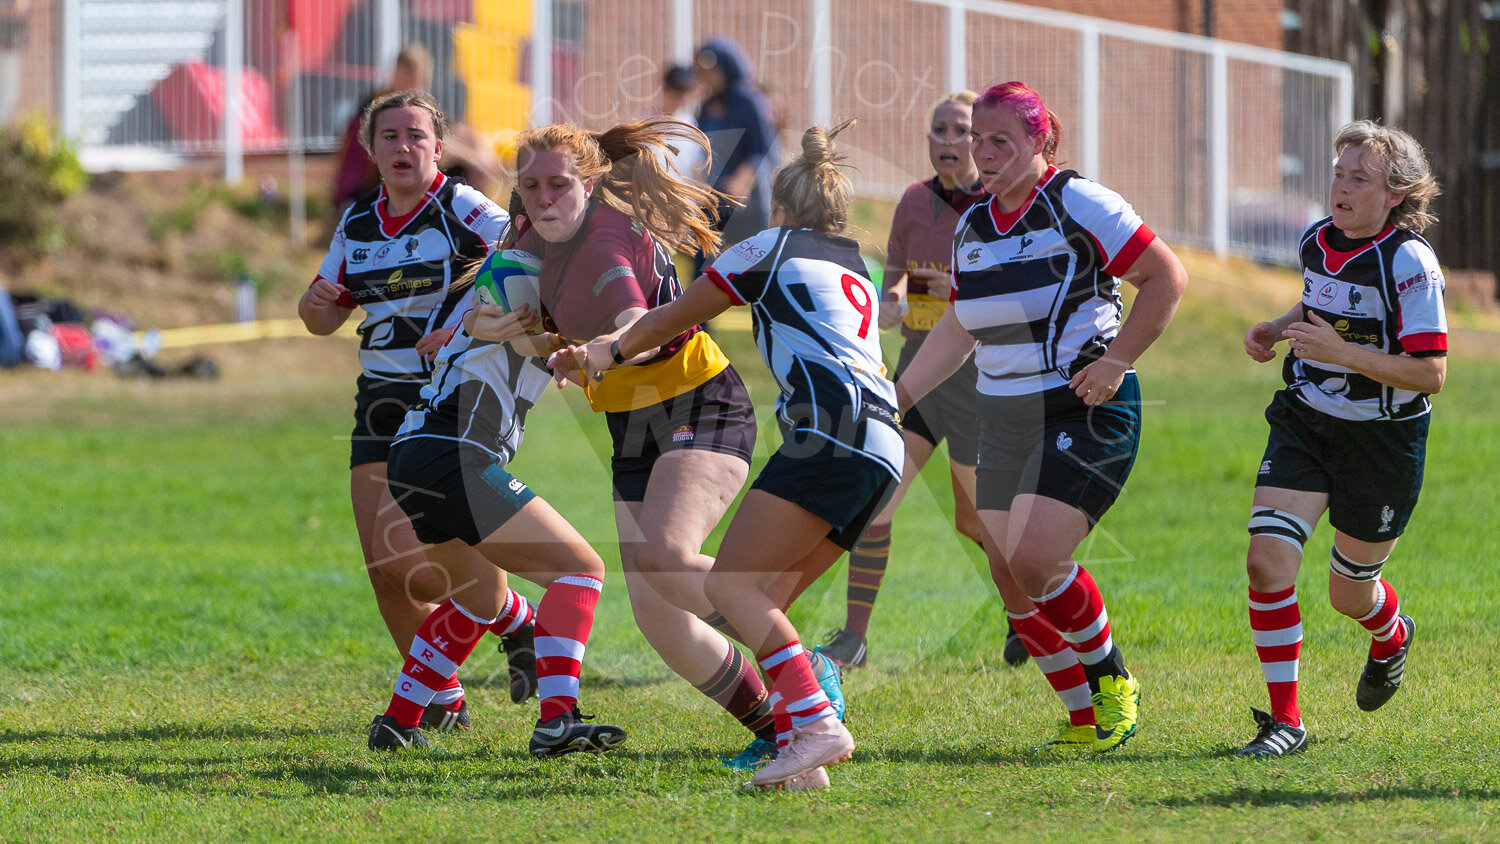 Bethan Scarr leads the charge down the field for Ampthill Ladies… (Photograph: Iain Frankish, Actuance Photography)